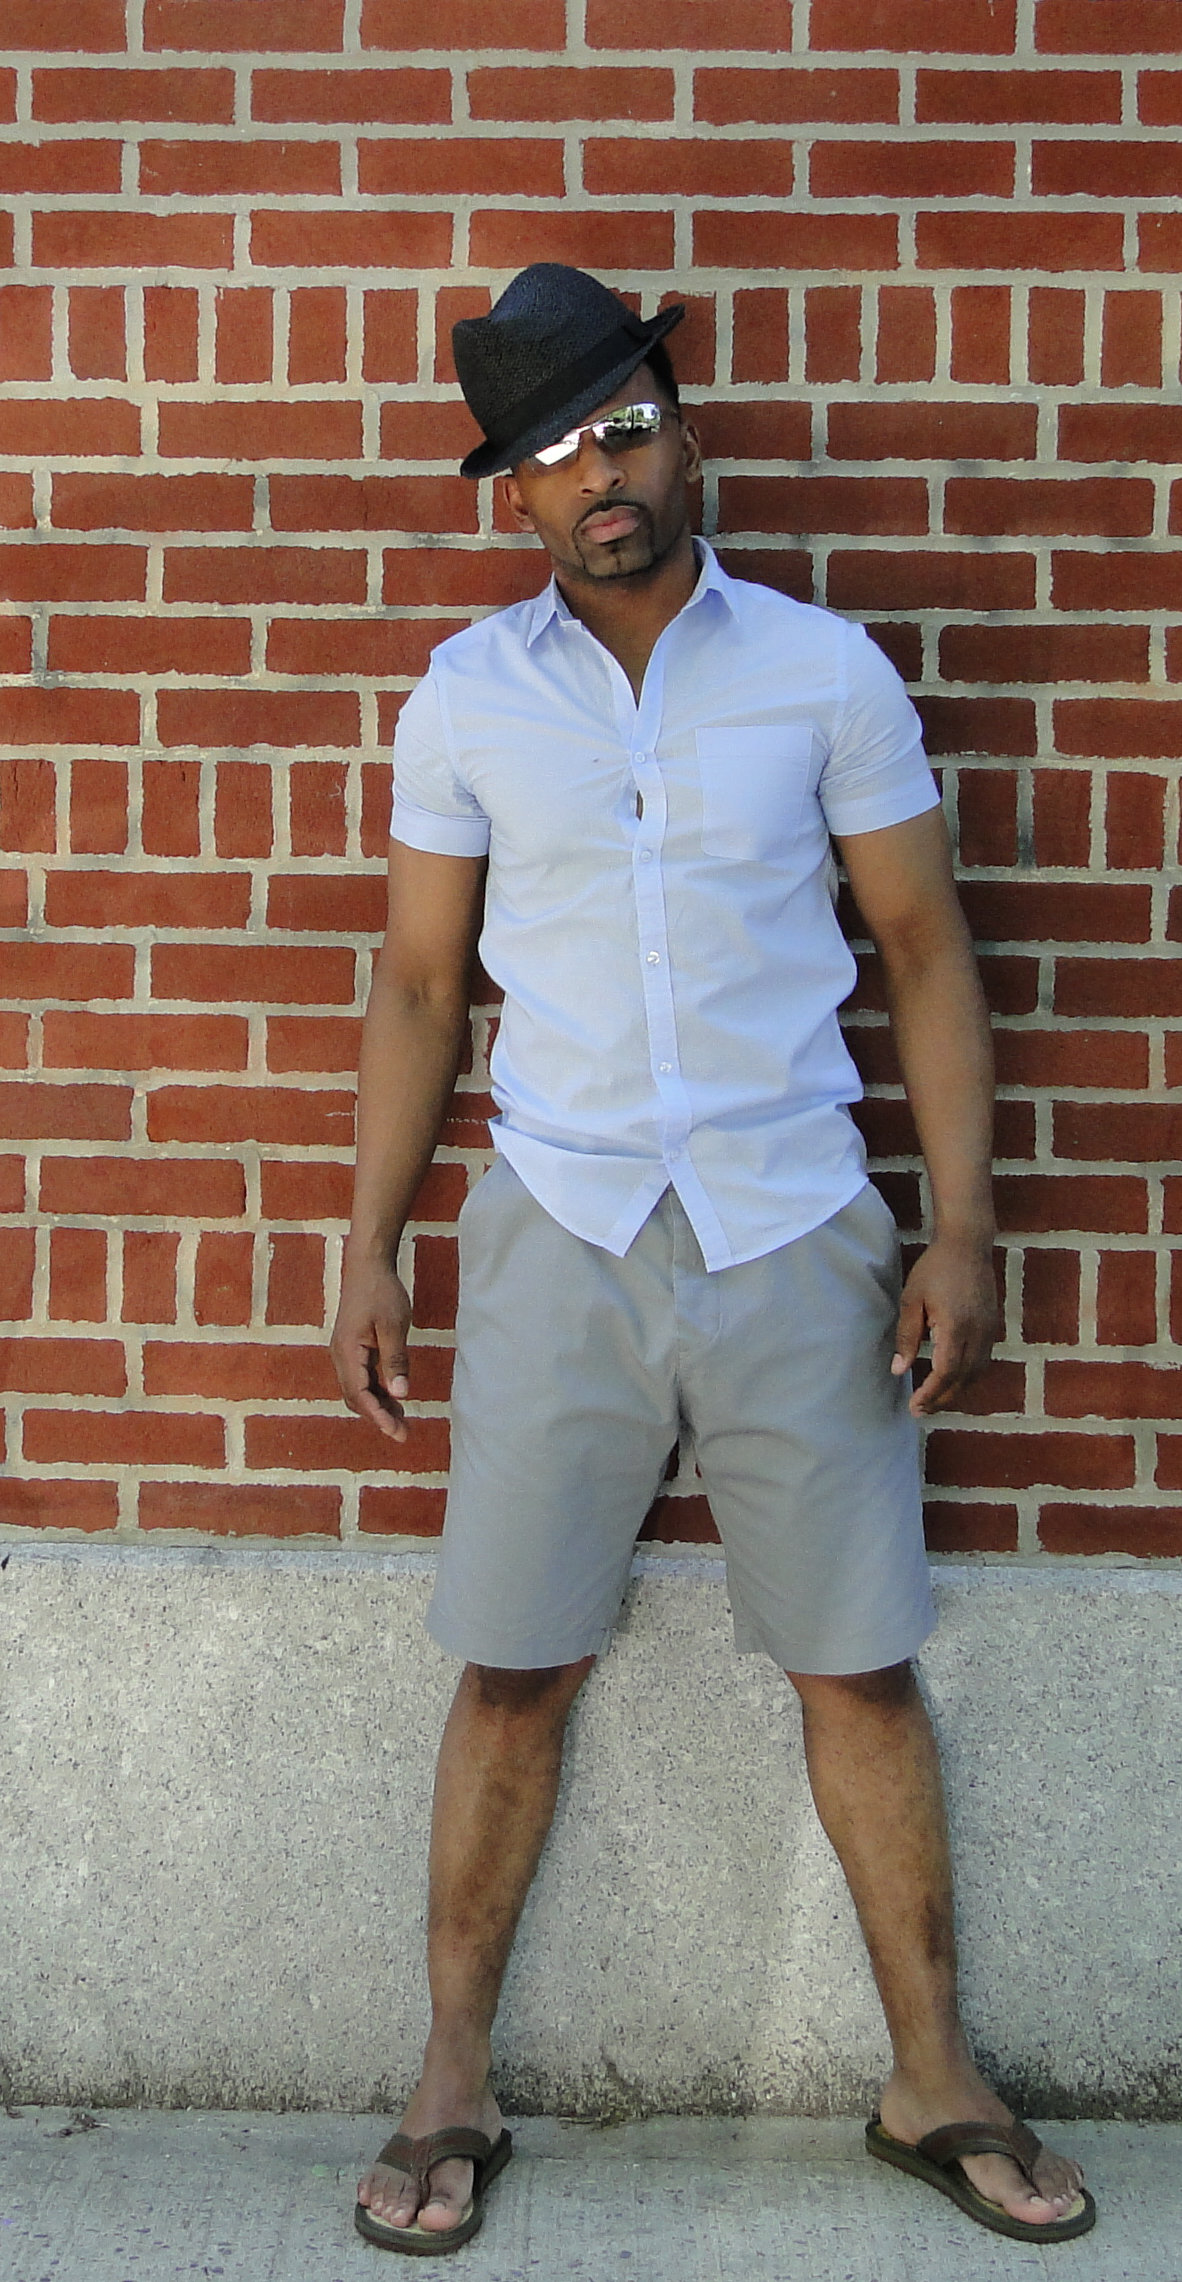 Summer Style For Short Men: Casual Formal Look | ShortGuyCentral